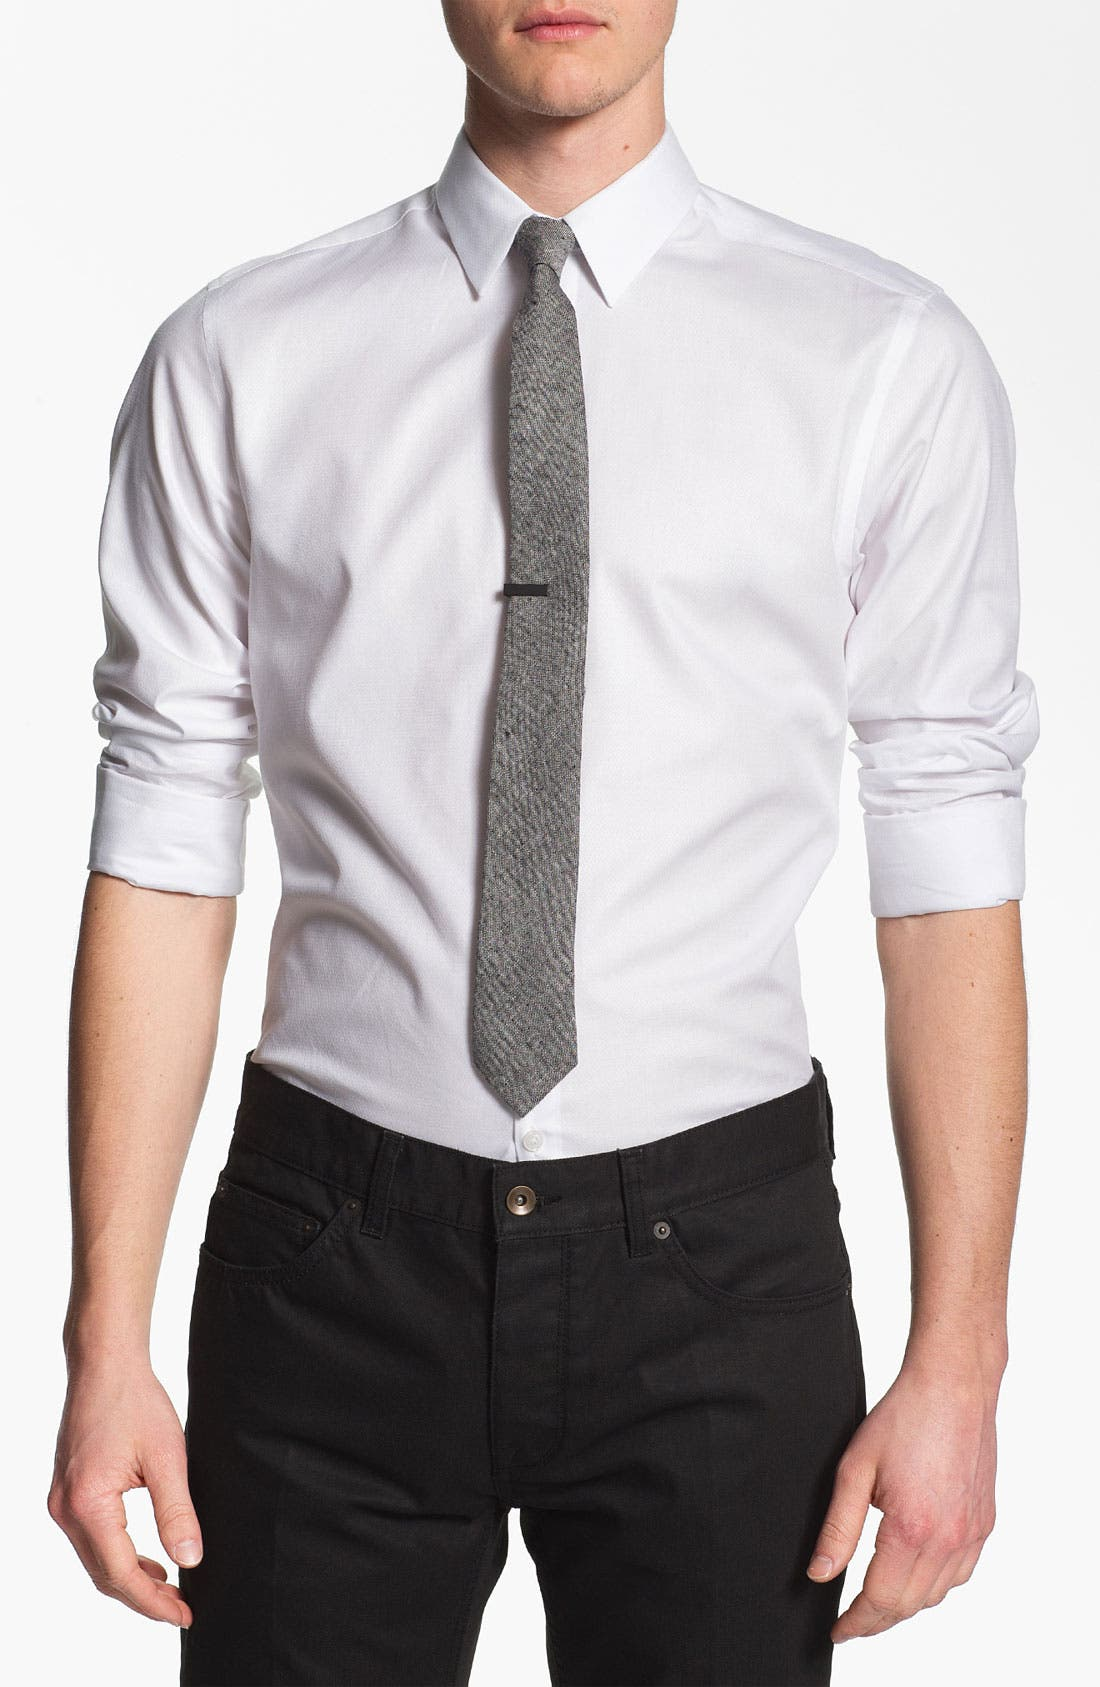 Alternate Image 1 Selected - Topman 'Lux Collection' Dress Shirt